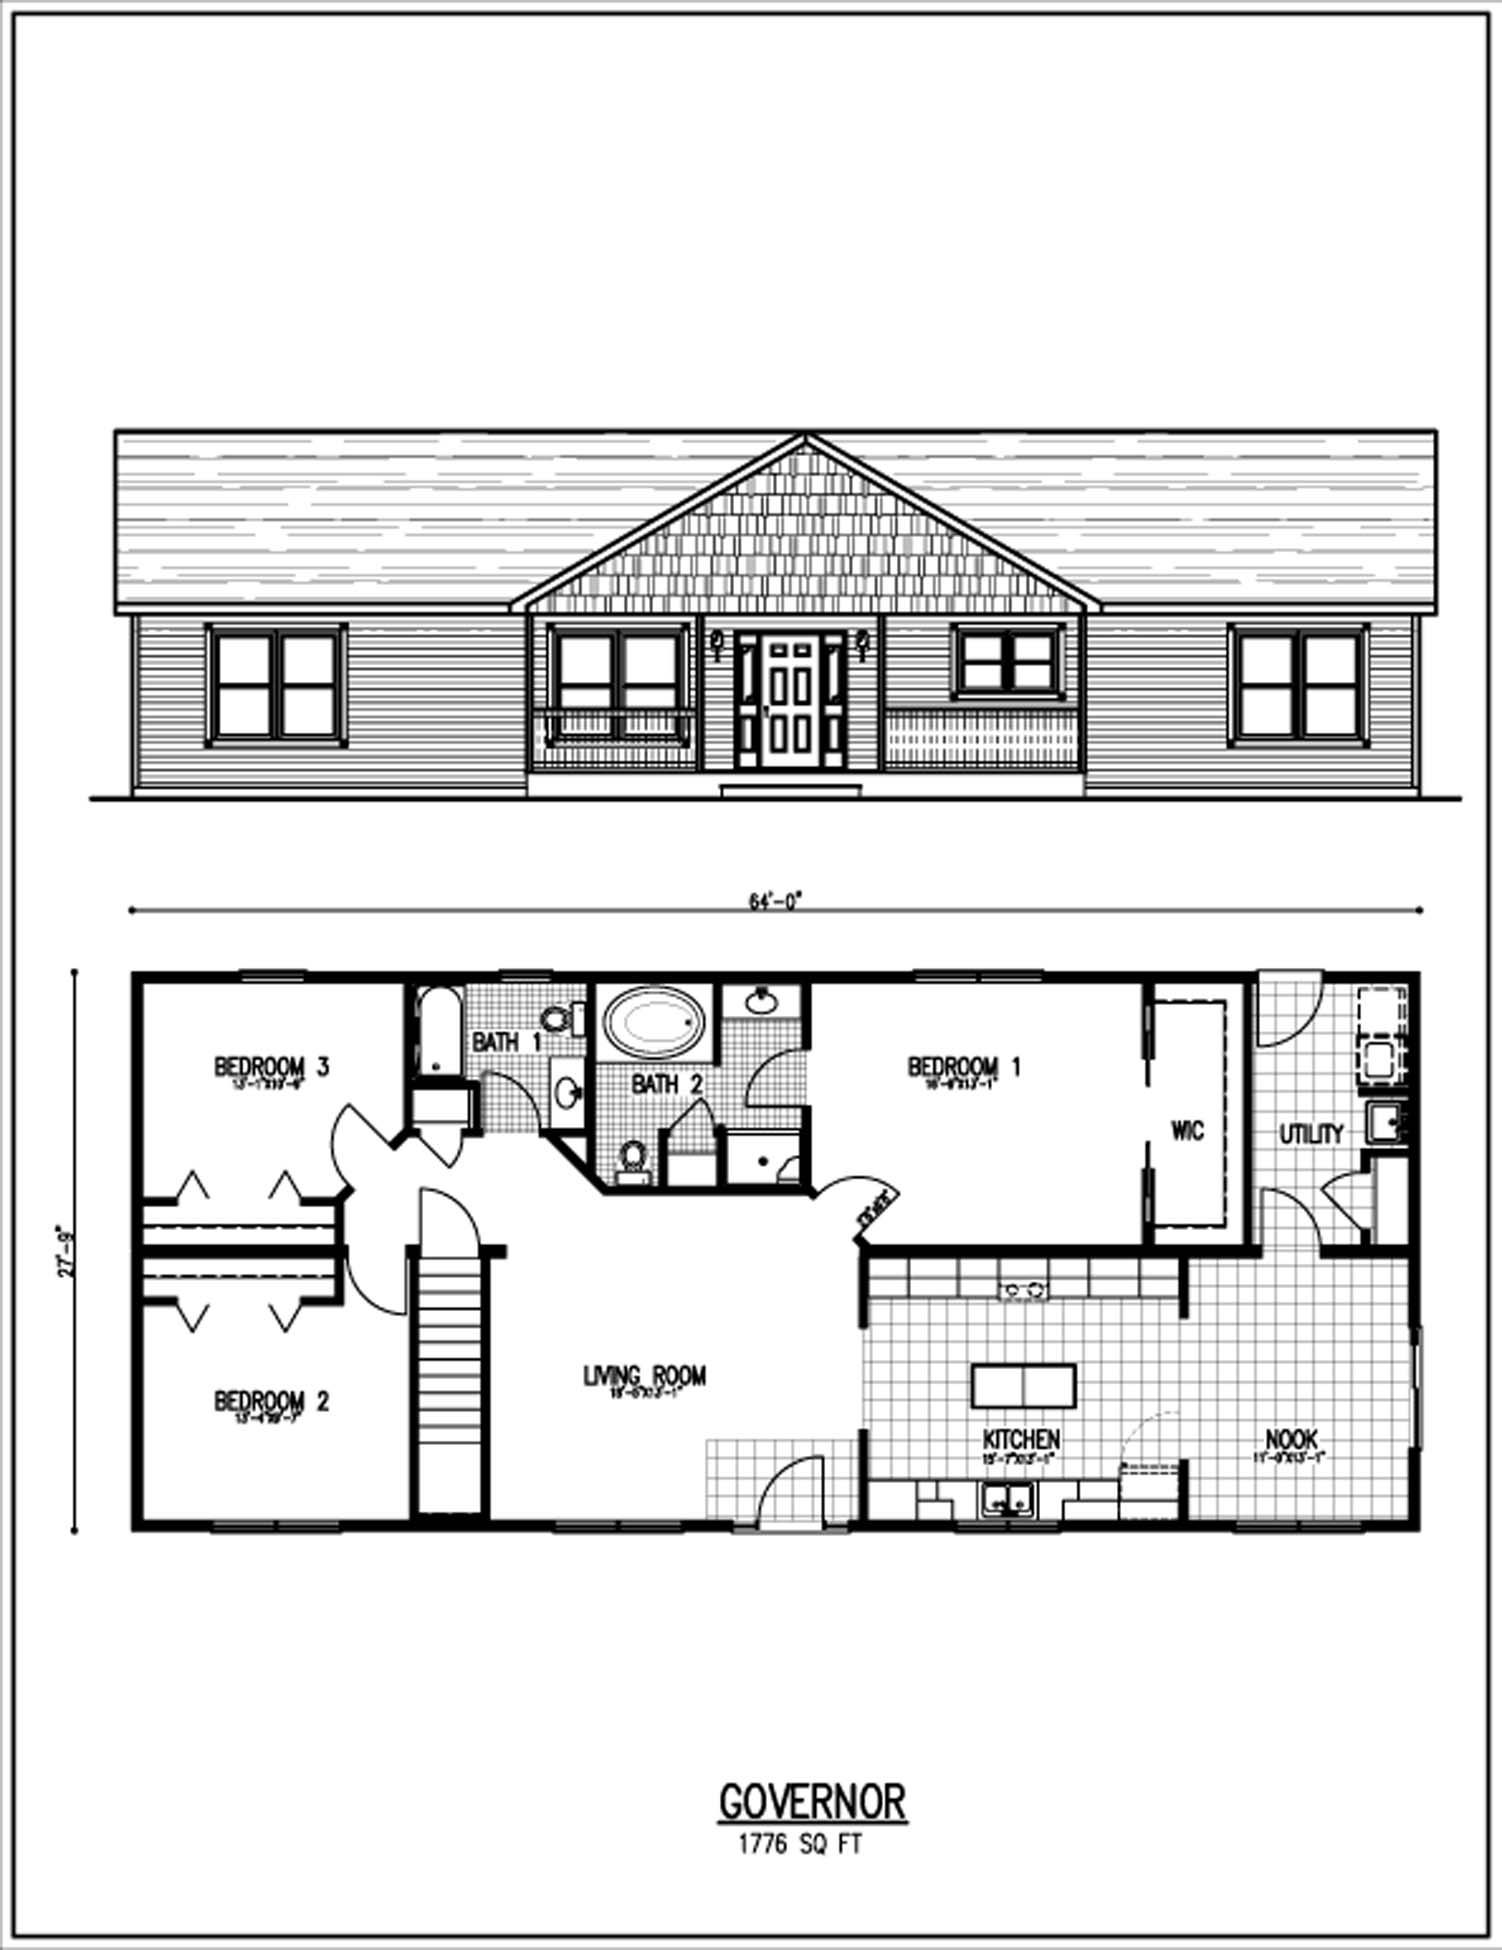 Floor plans by shawam082498 on pinterest floor plans for Ranch style blueprints